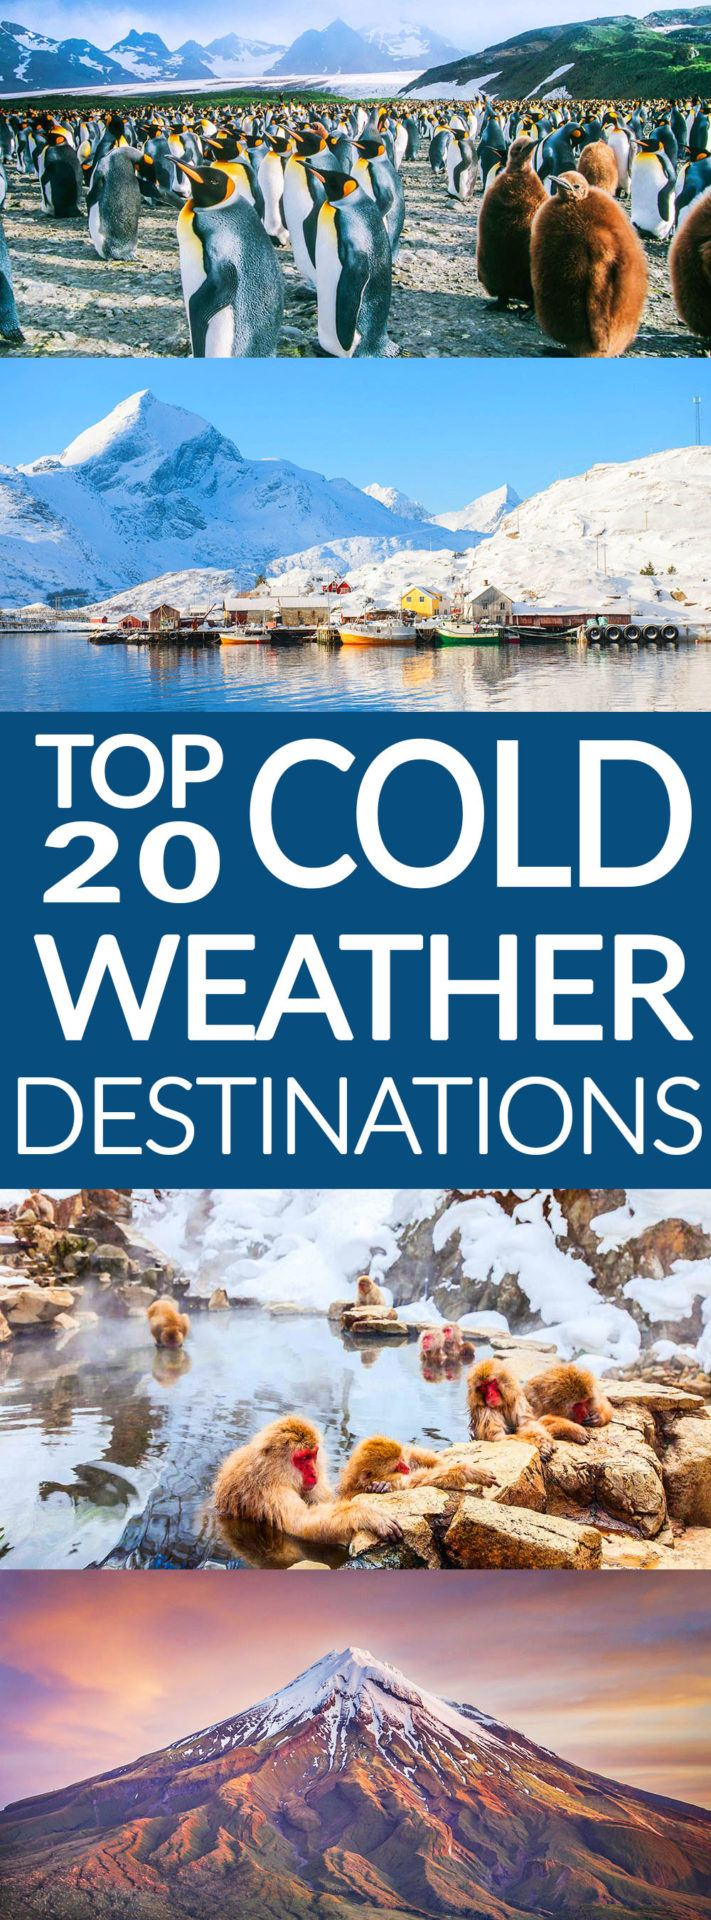 Top 20 Cold Weather Destinations